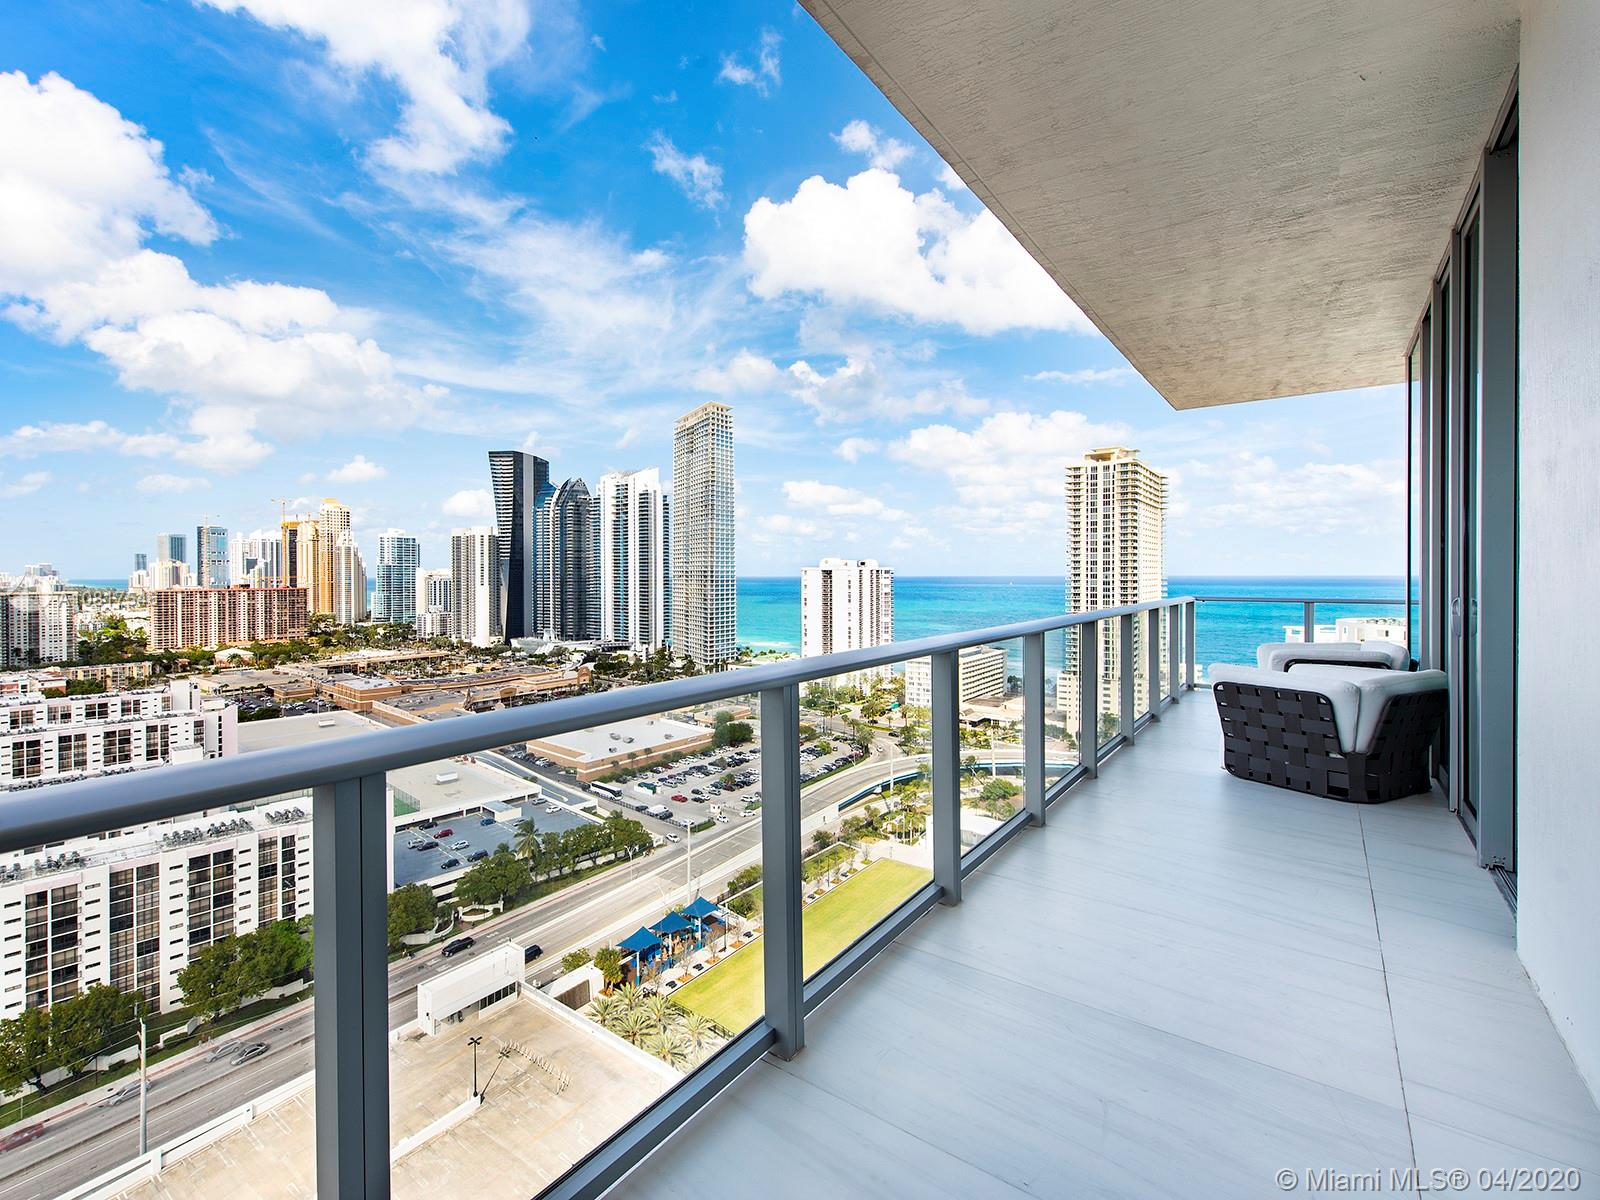 Photo of Parque Towers Apt TS1